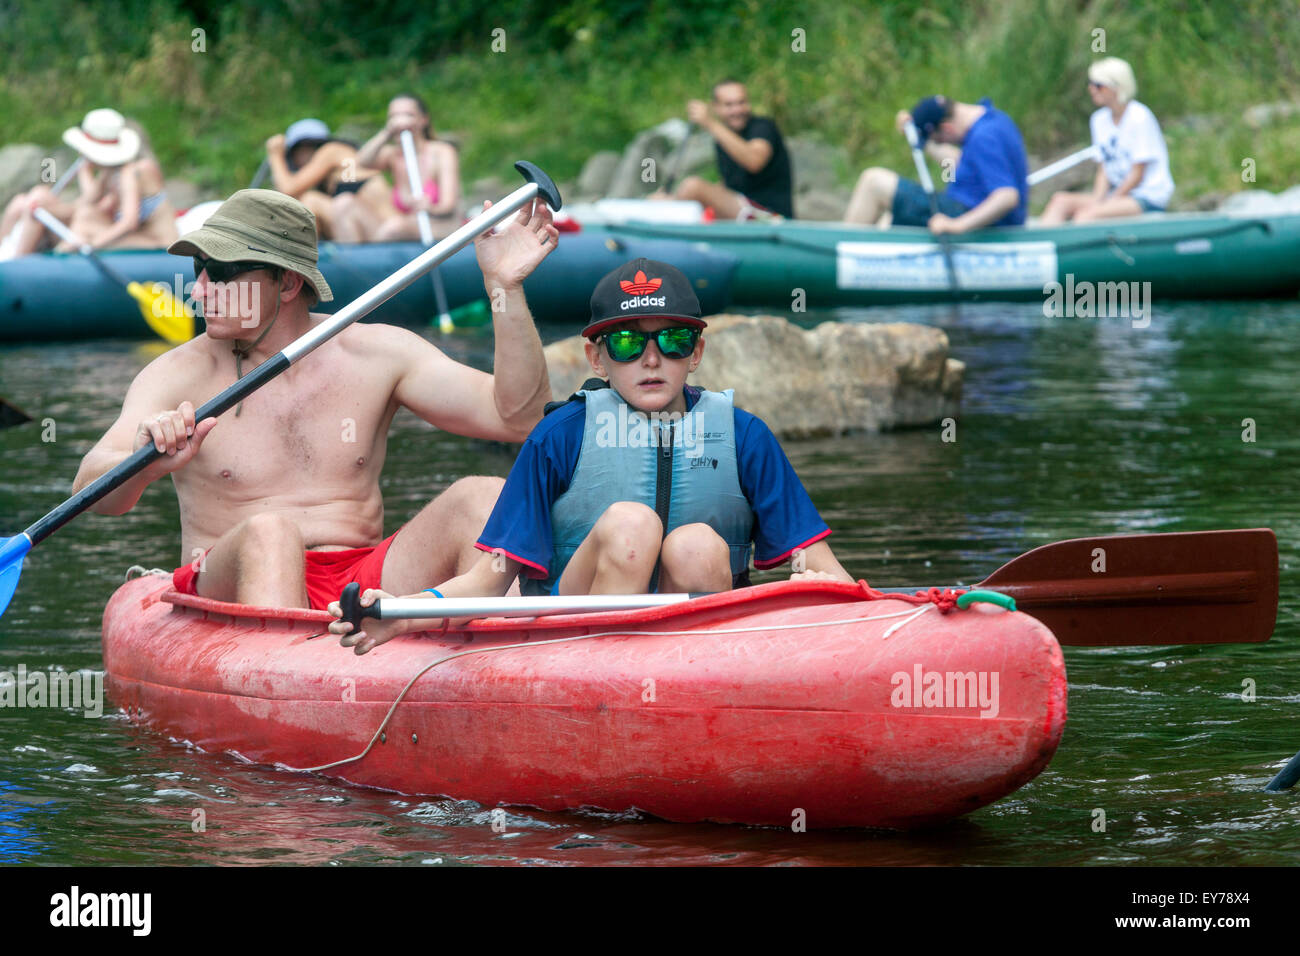 People going down by the river Vltava, canoeing, South Bohemia, Czech Republic - Stock Image